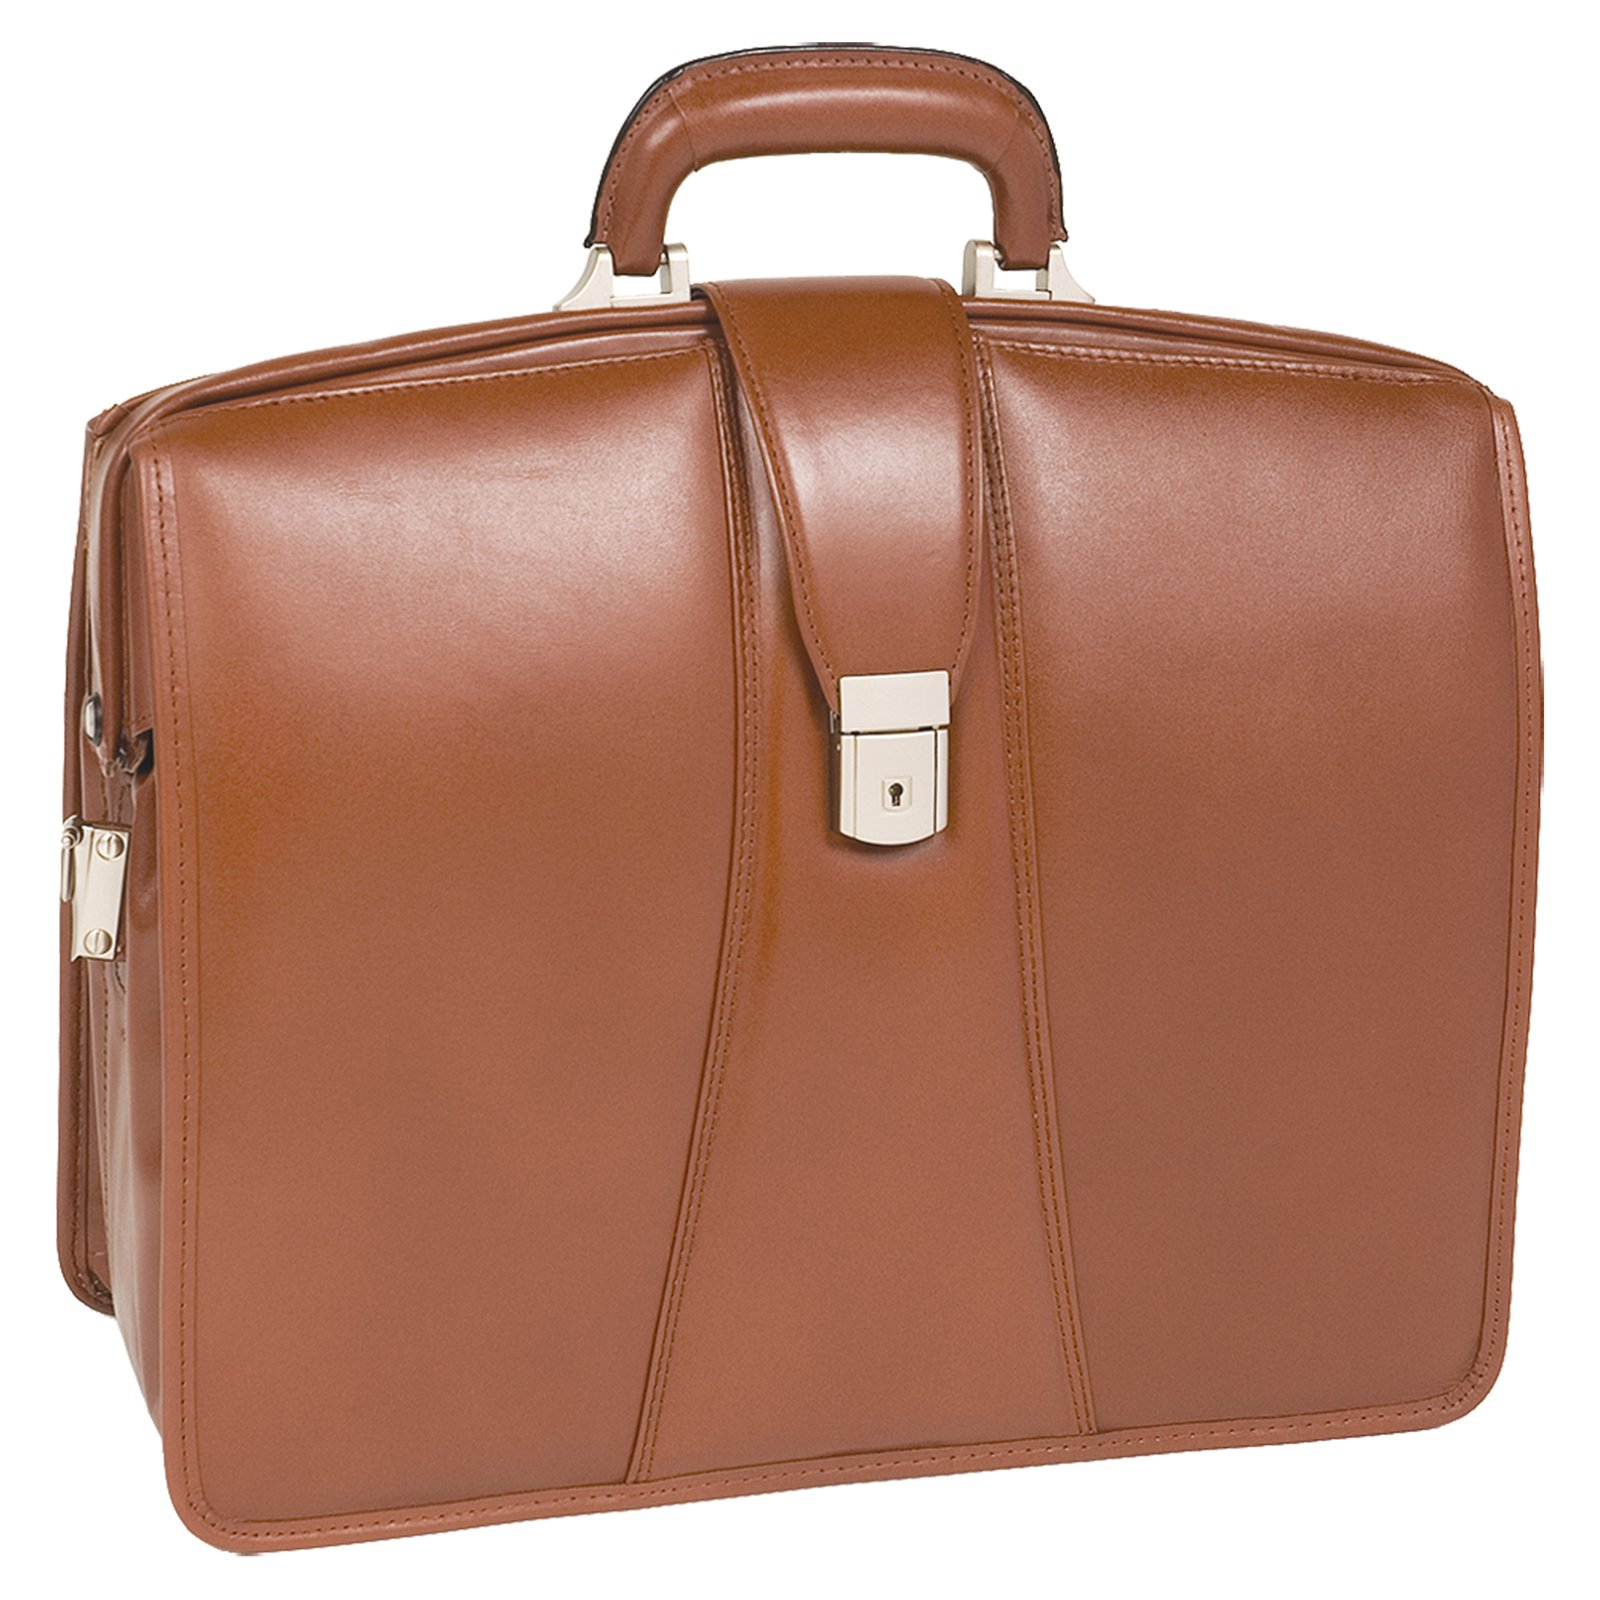 McKlein USA Harrison Leather Laptop Briefcase - Brown